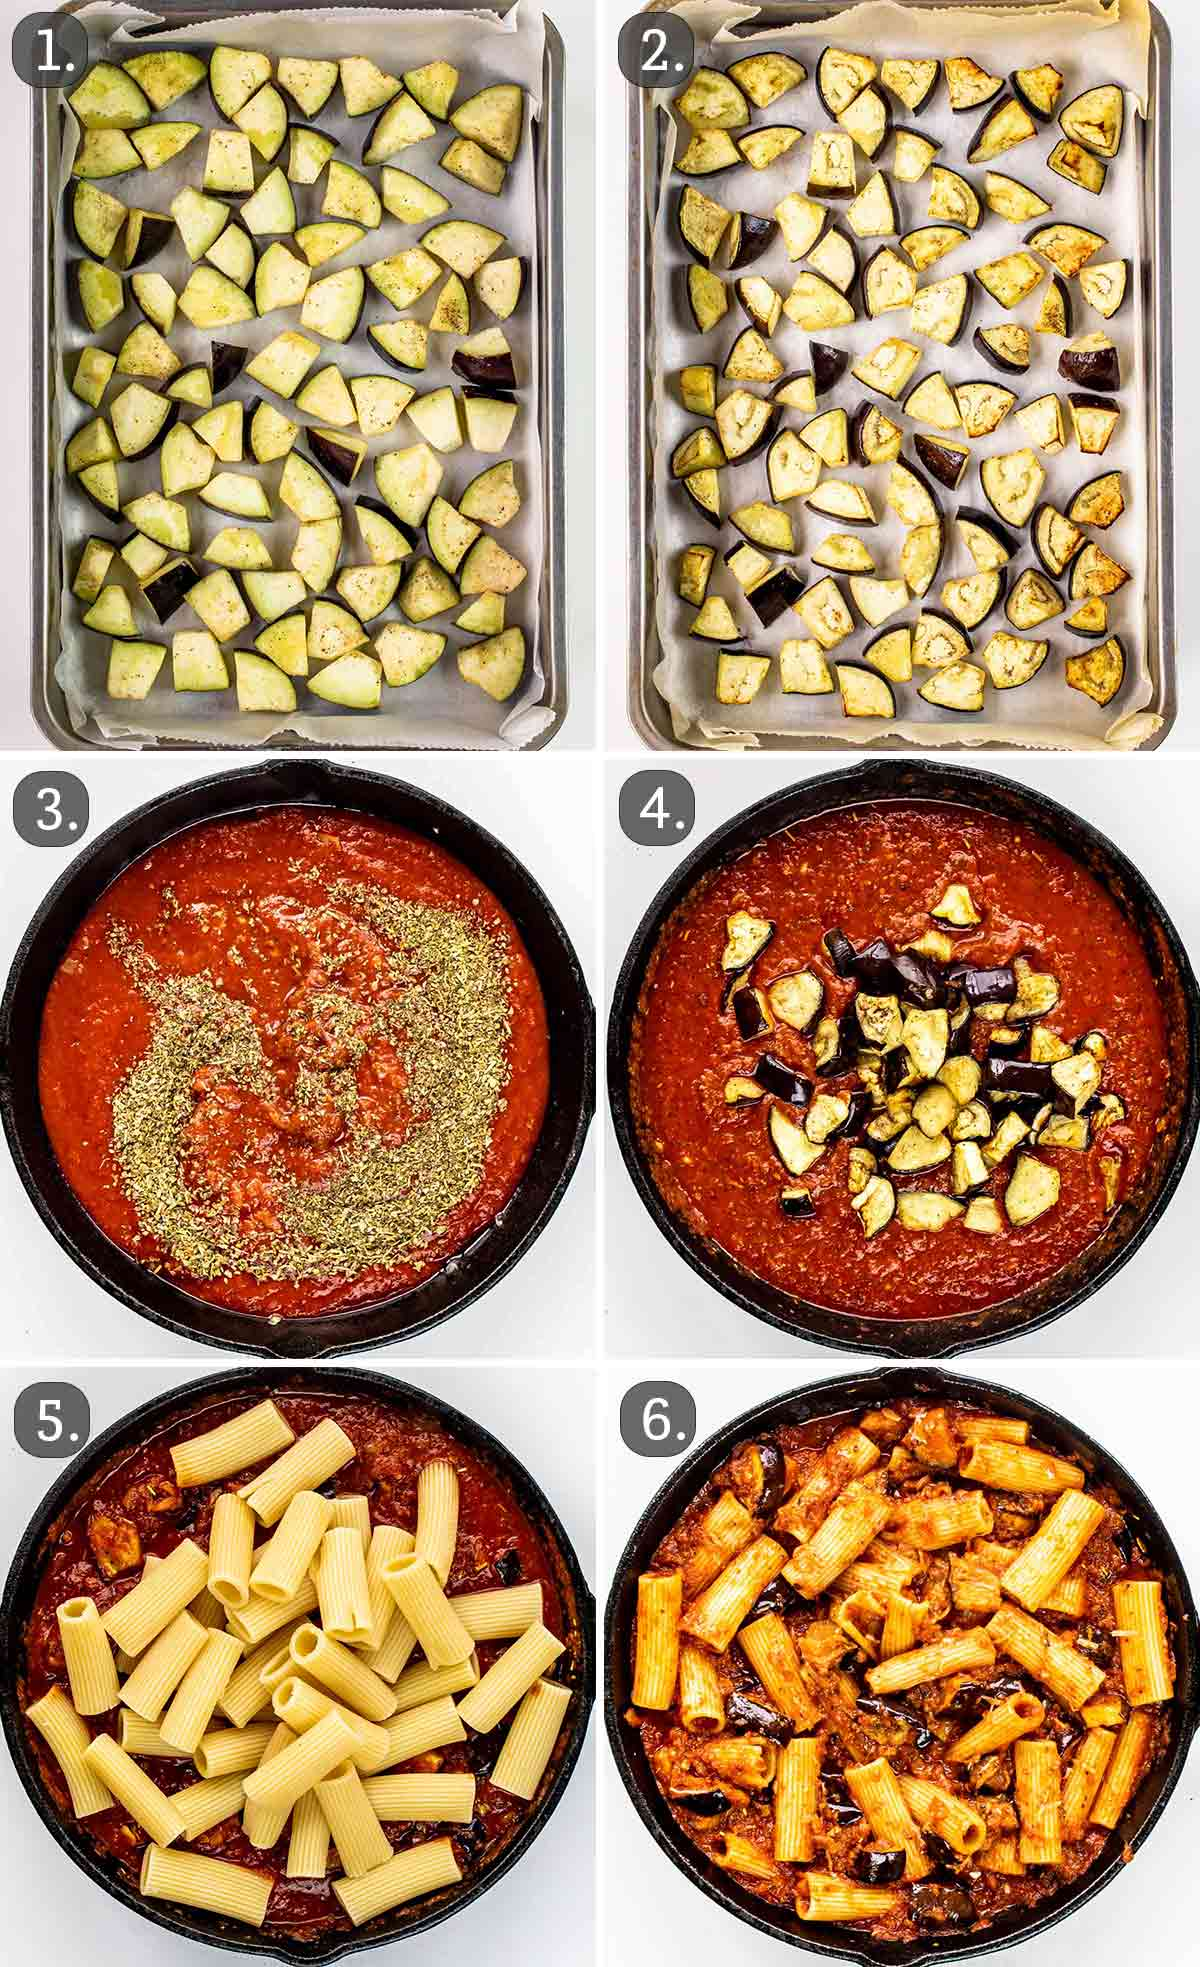 process shots showing how to make pasta alla norma.